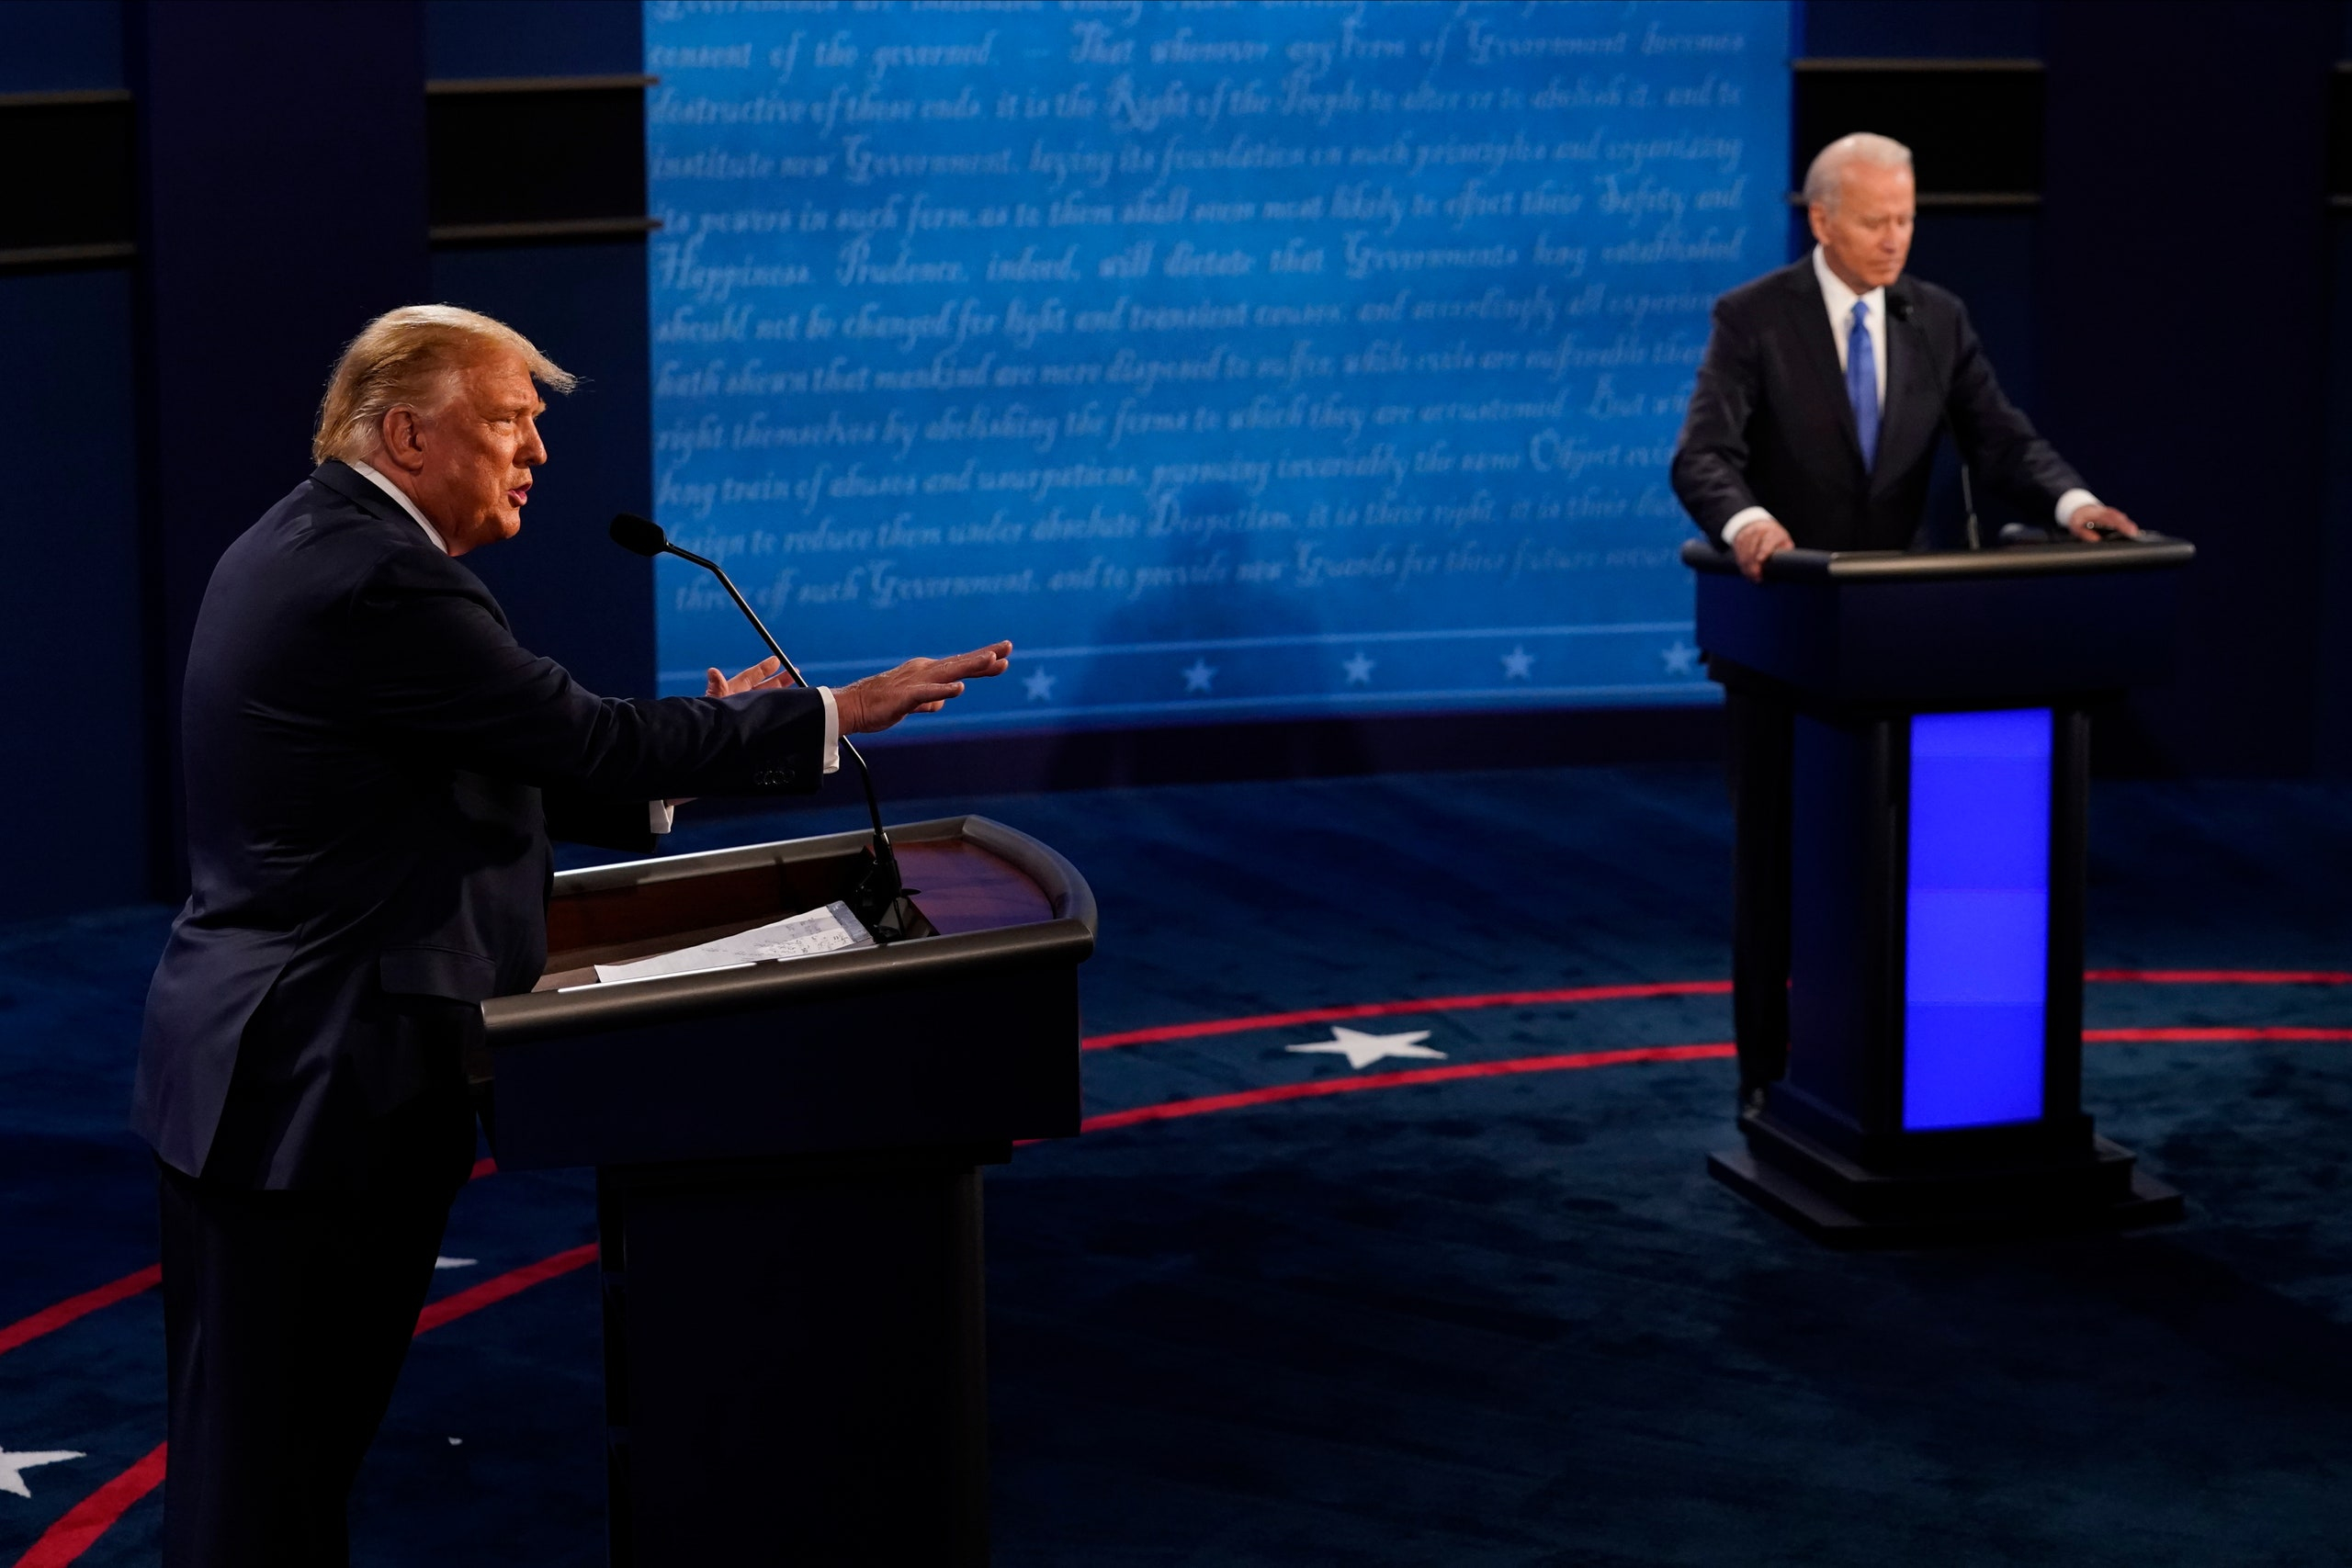 NEWS_debate2_getty images